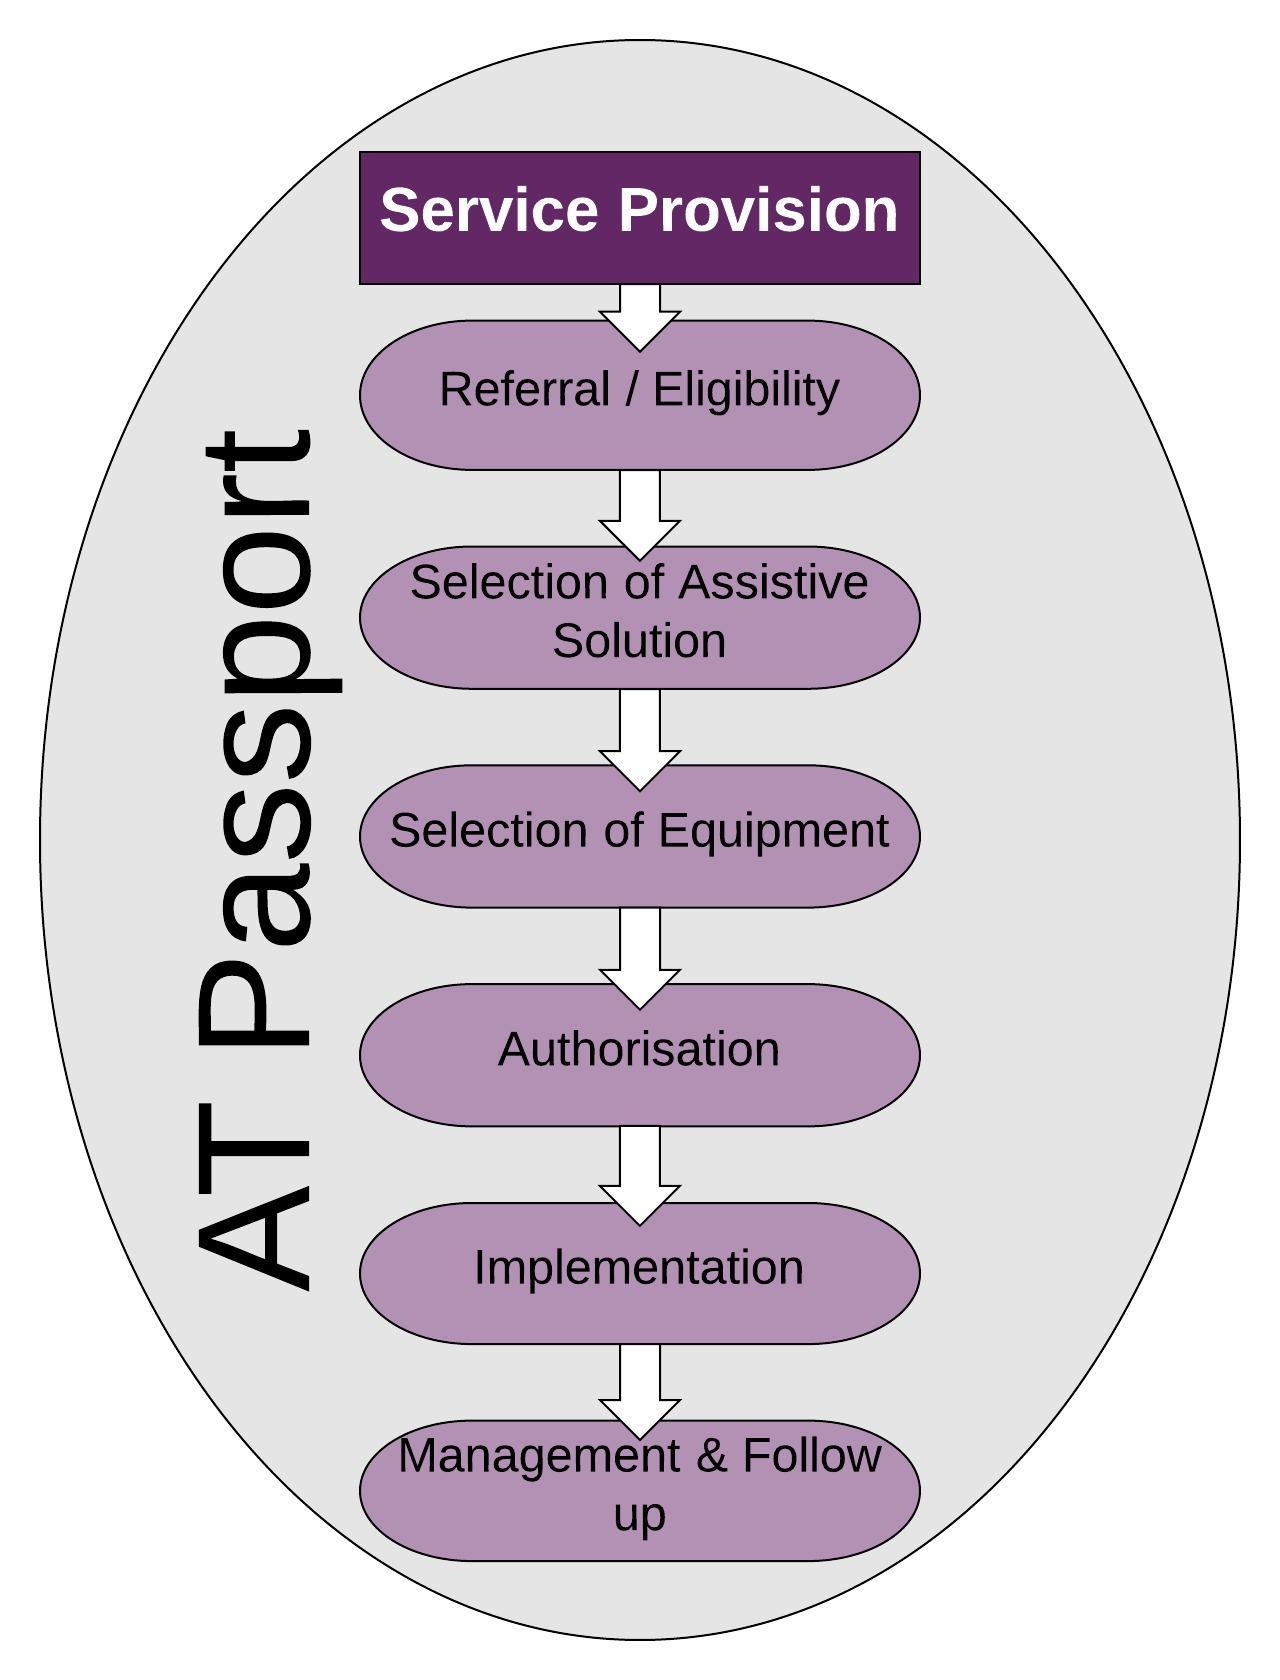 Service Povision, referra/eligibility, Selection of Assistive Soltion, Selection of Equipment, Authorisation, Implementation, Management and Follow up